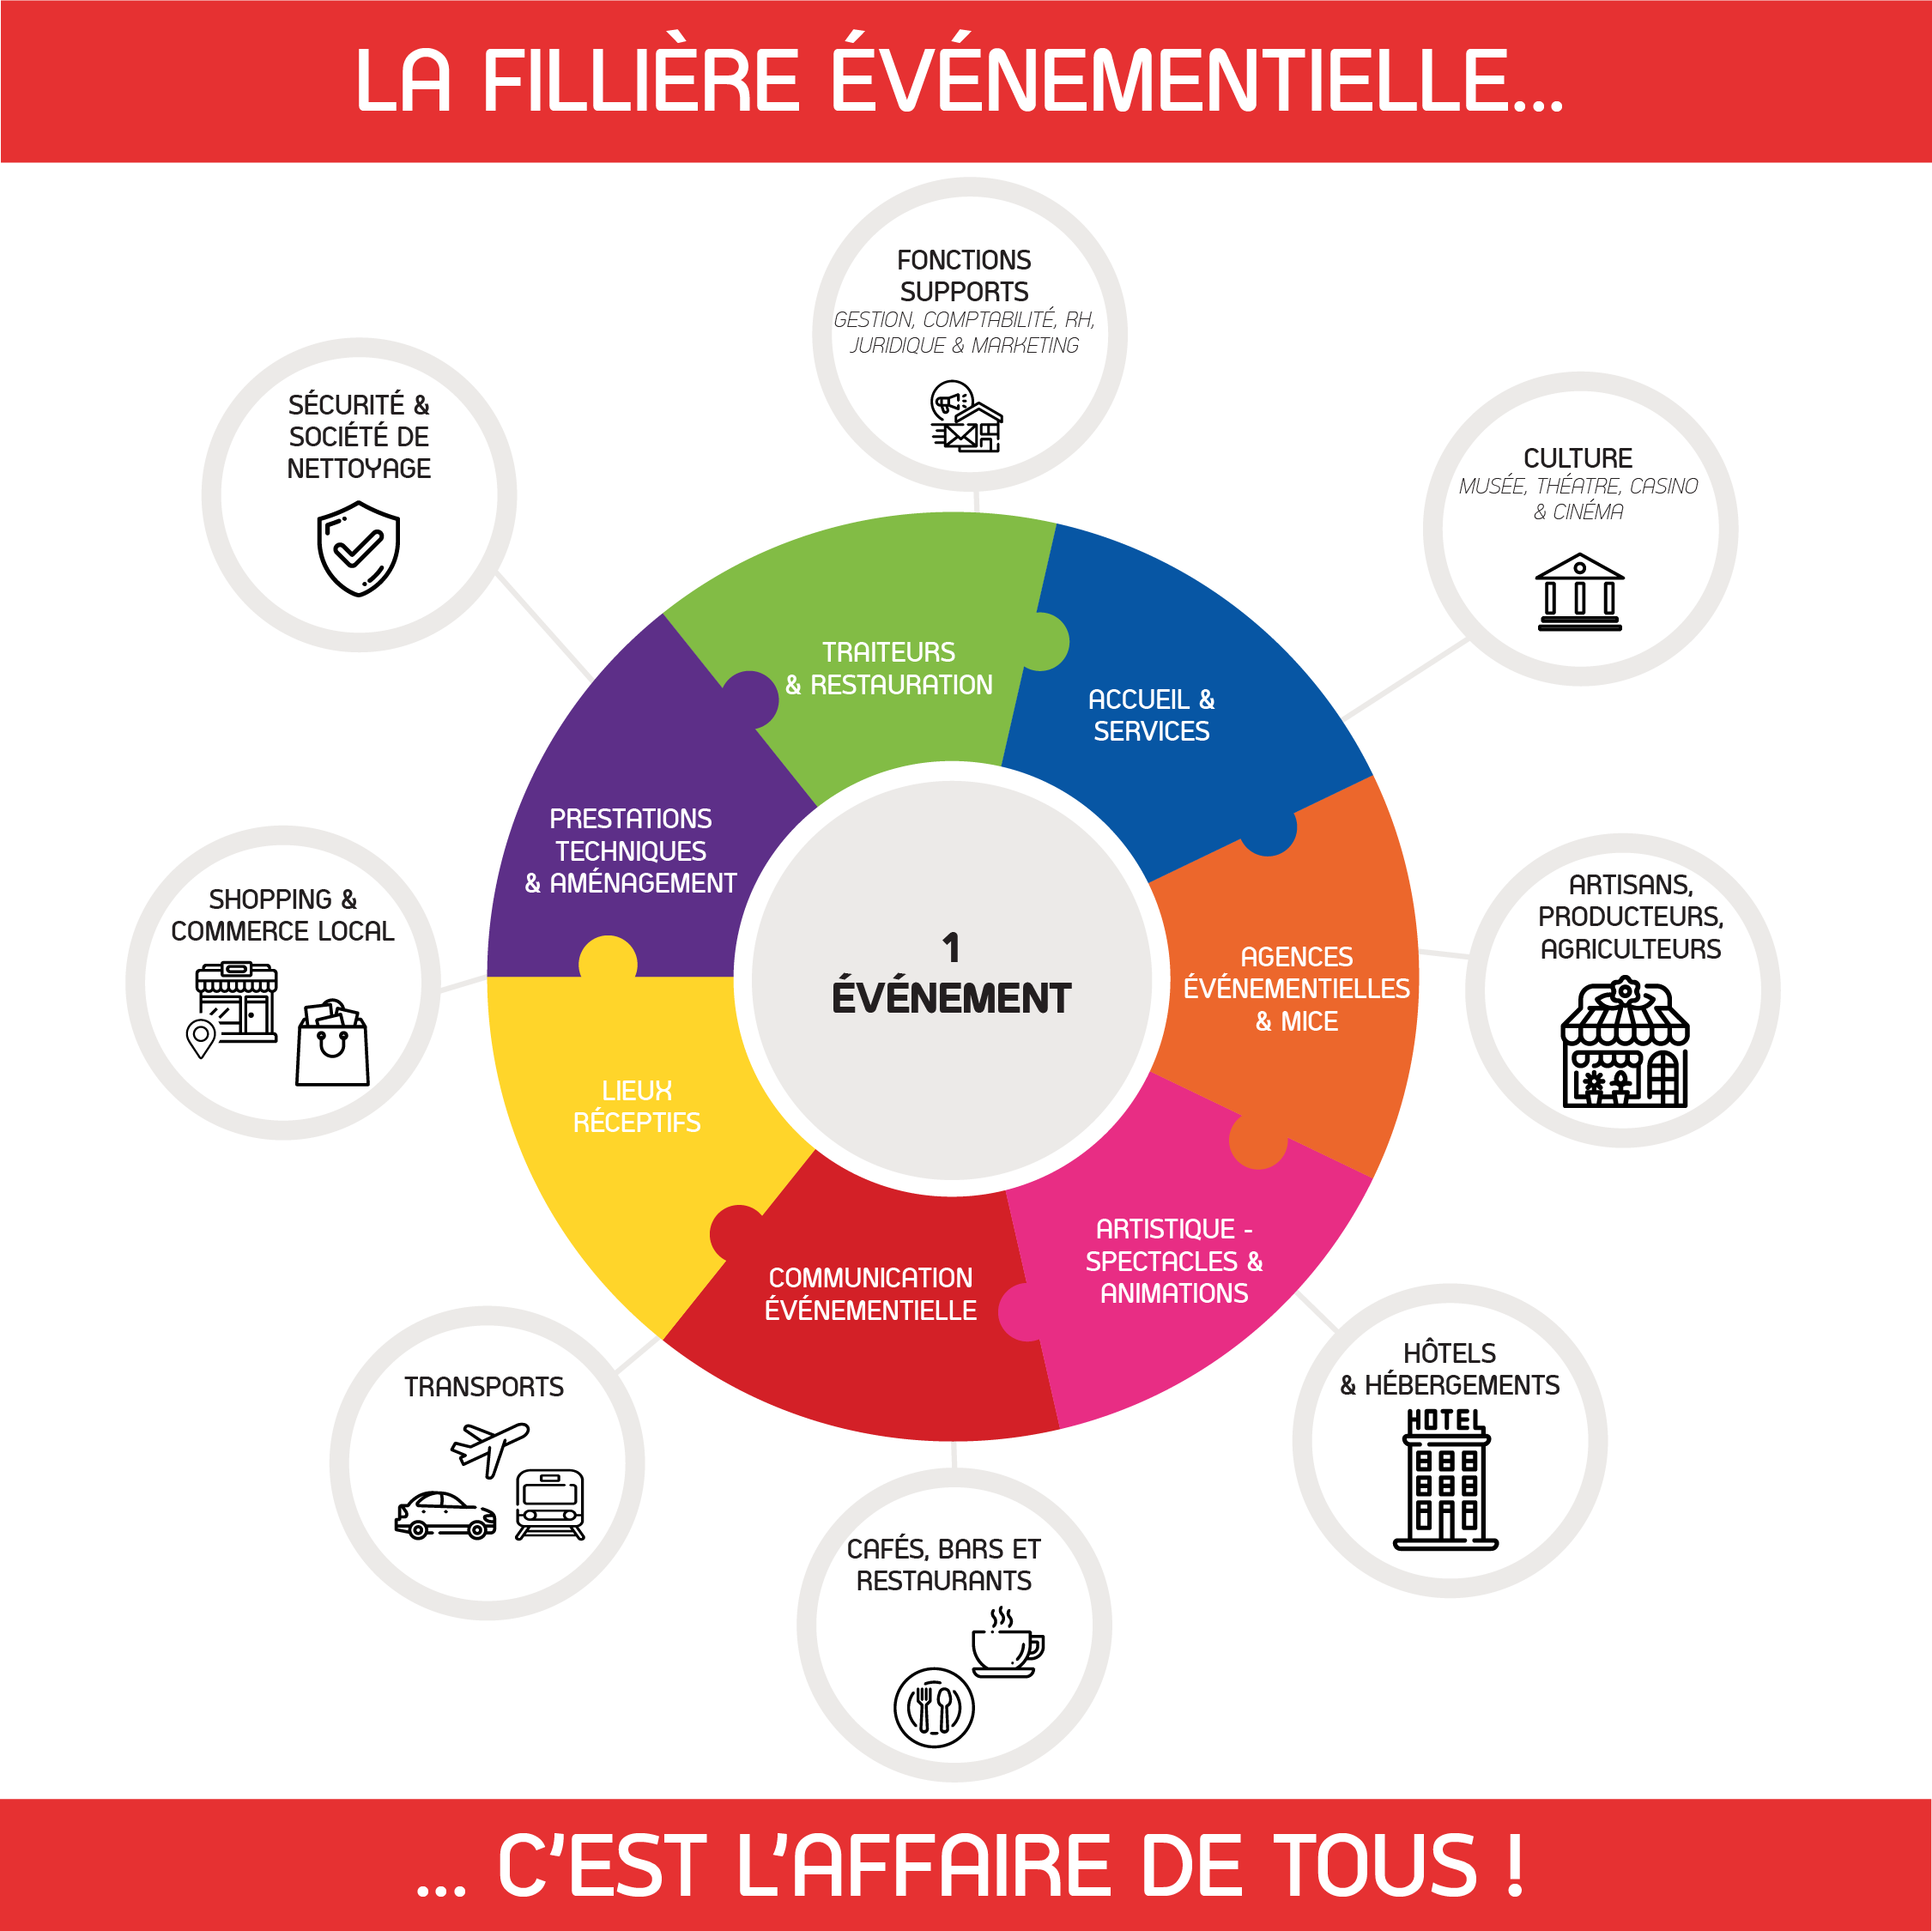 soutien filiere evenementielle lille events place de la communication